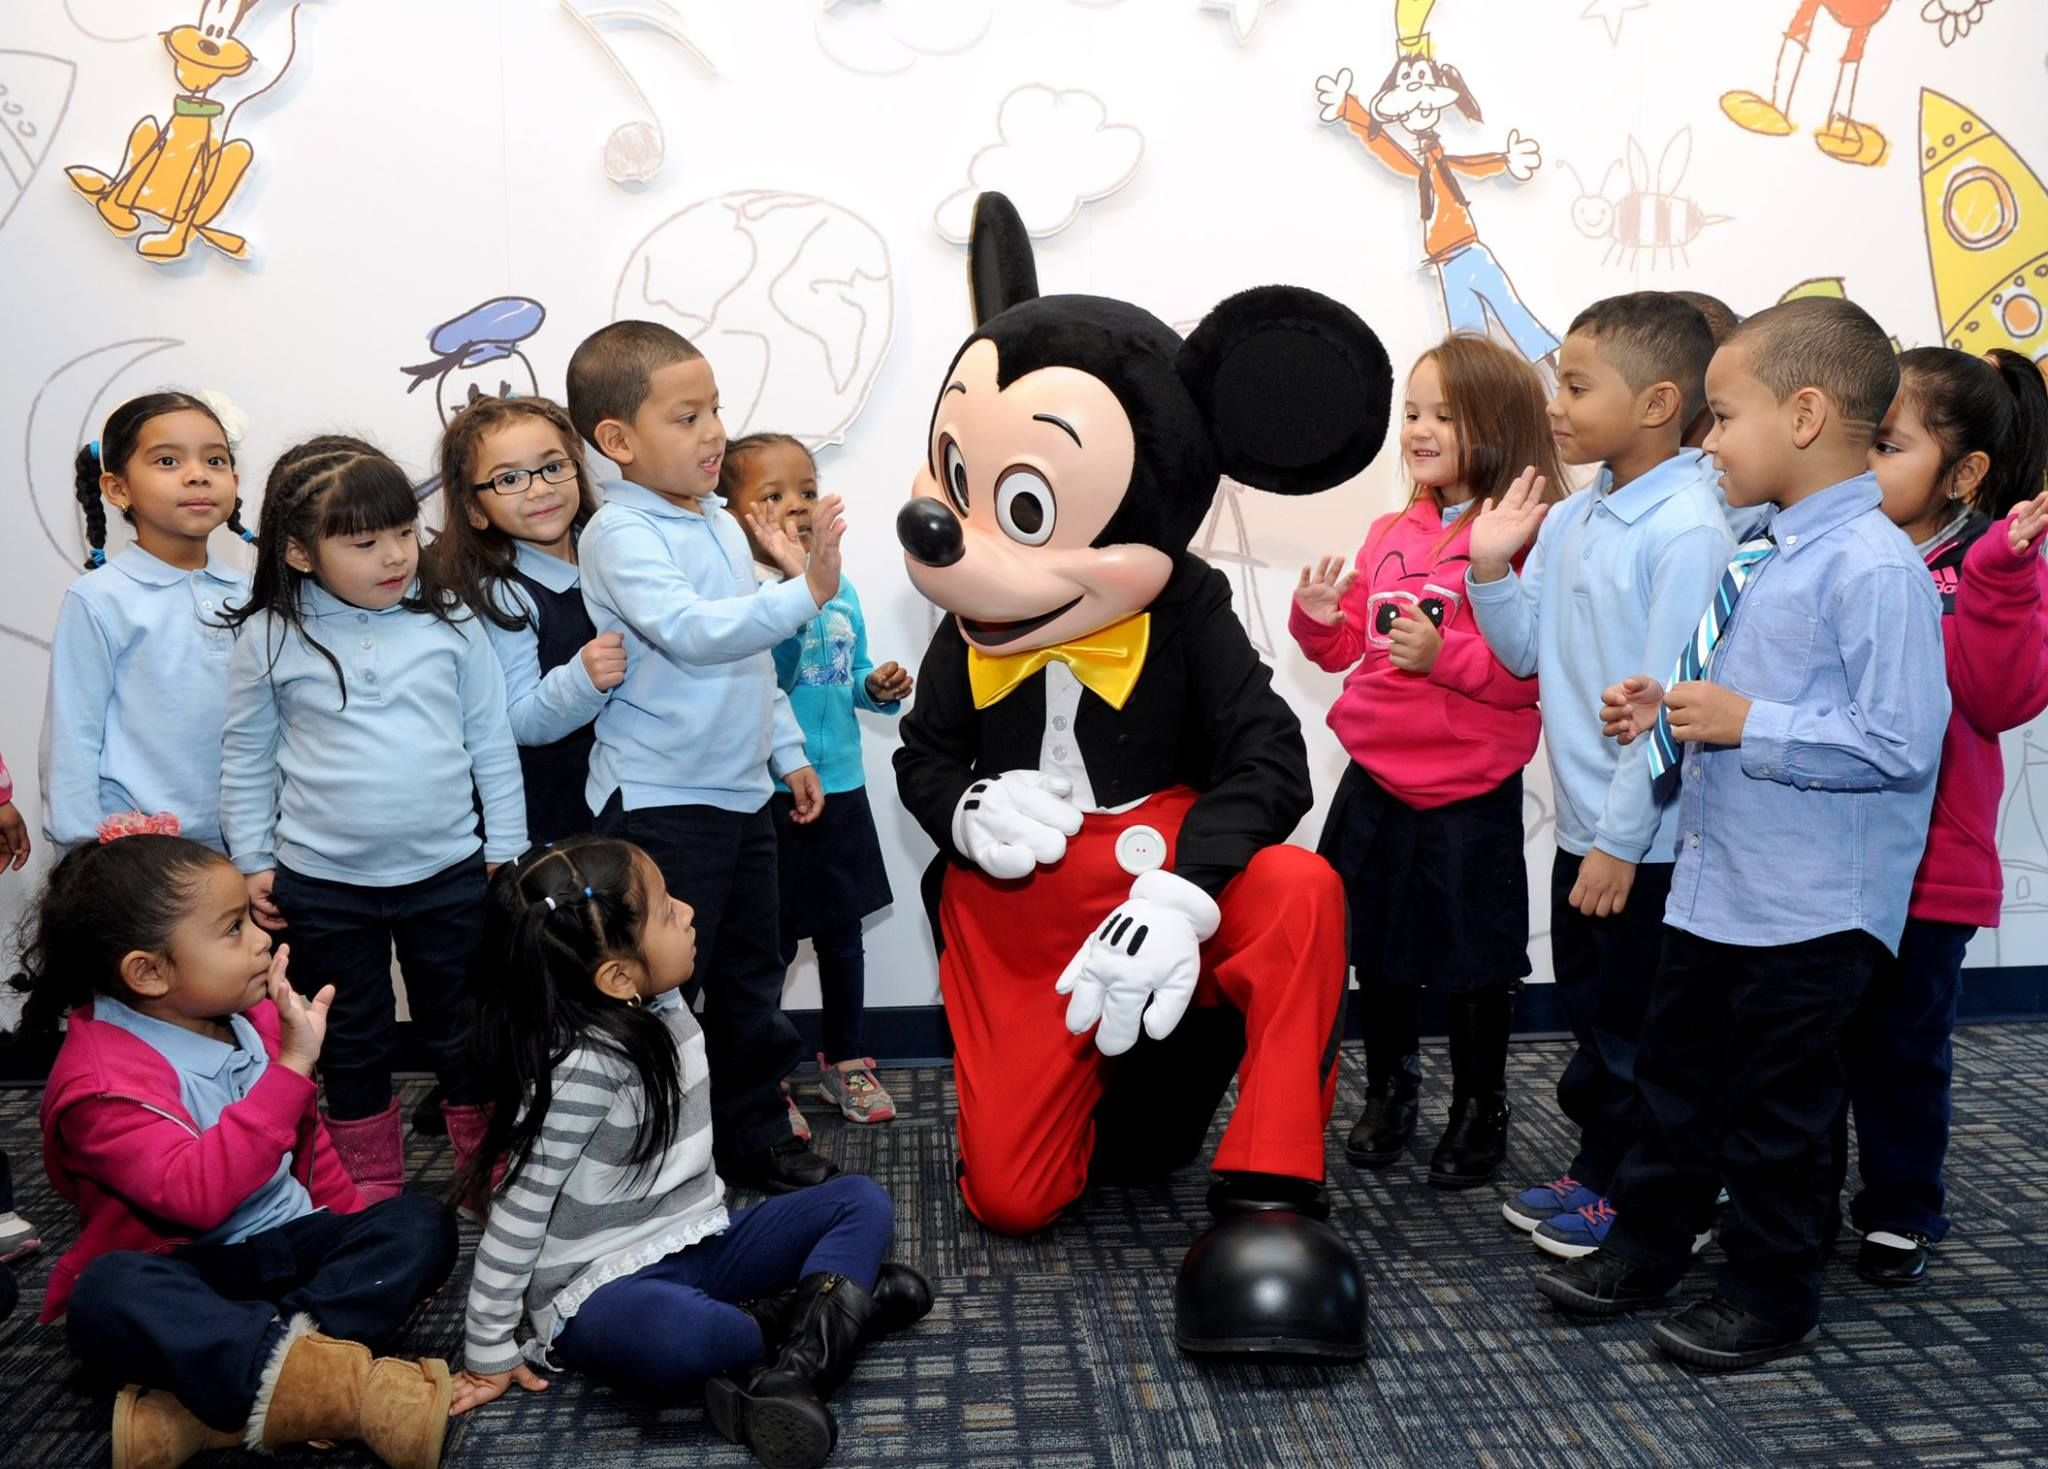 Mickey telling all these creative kids about Disney